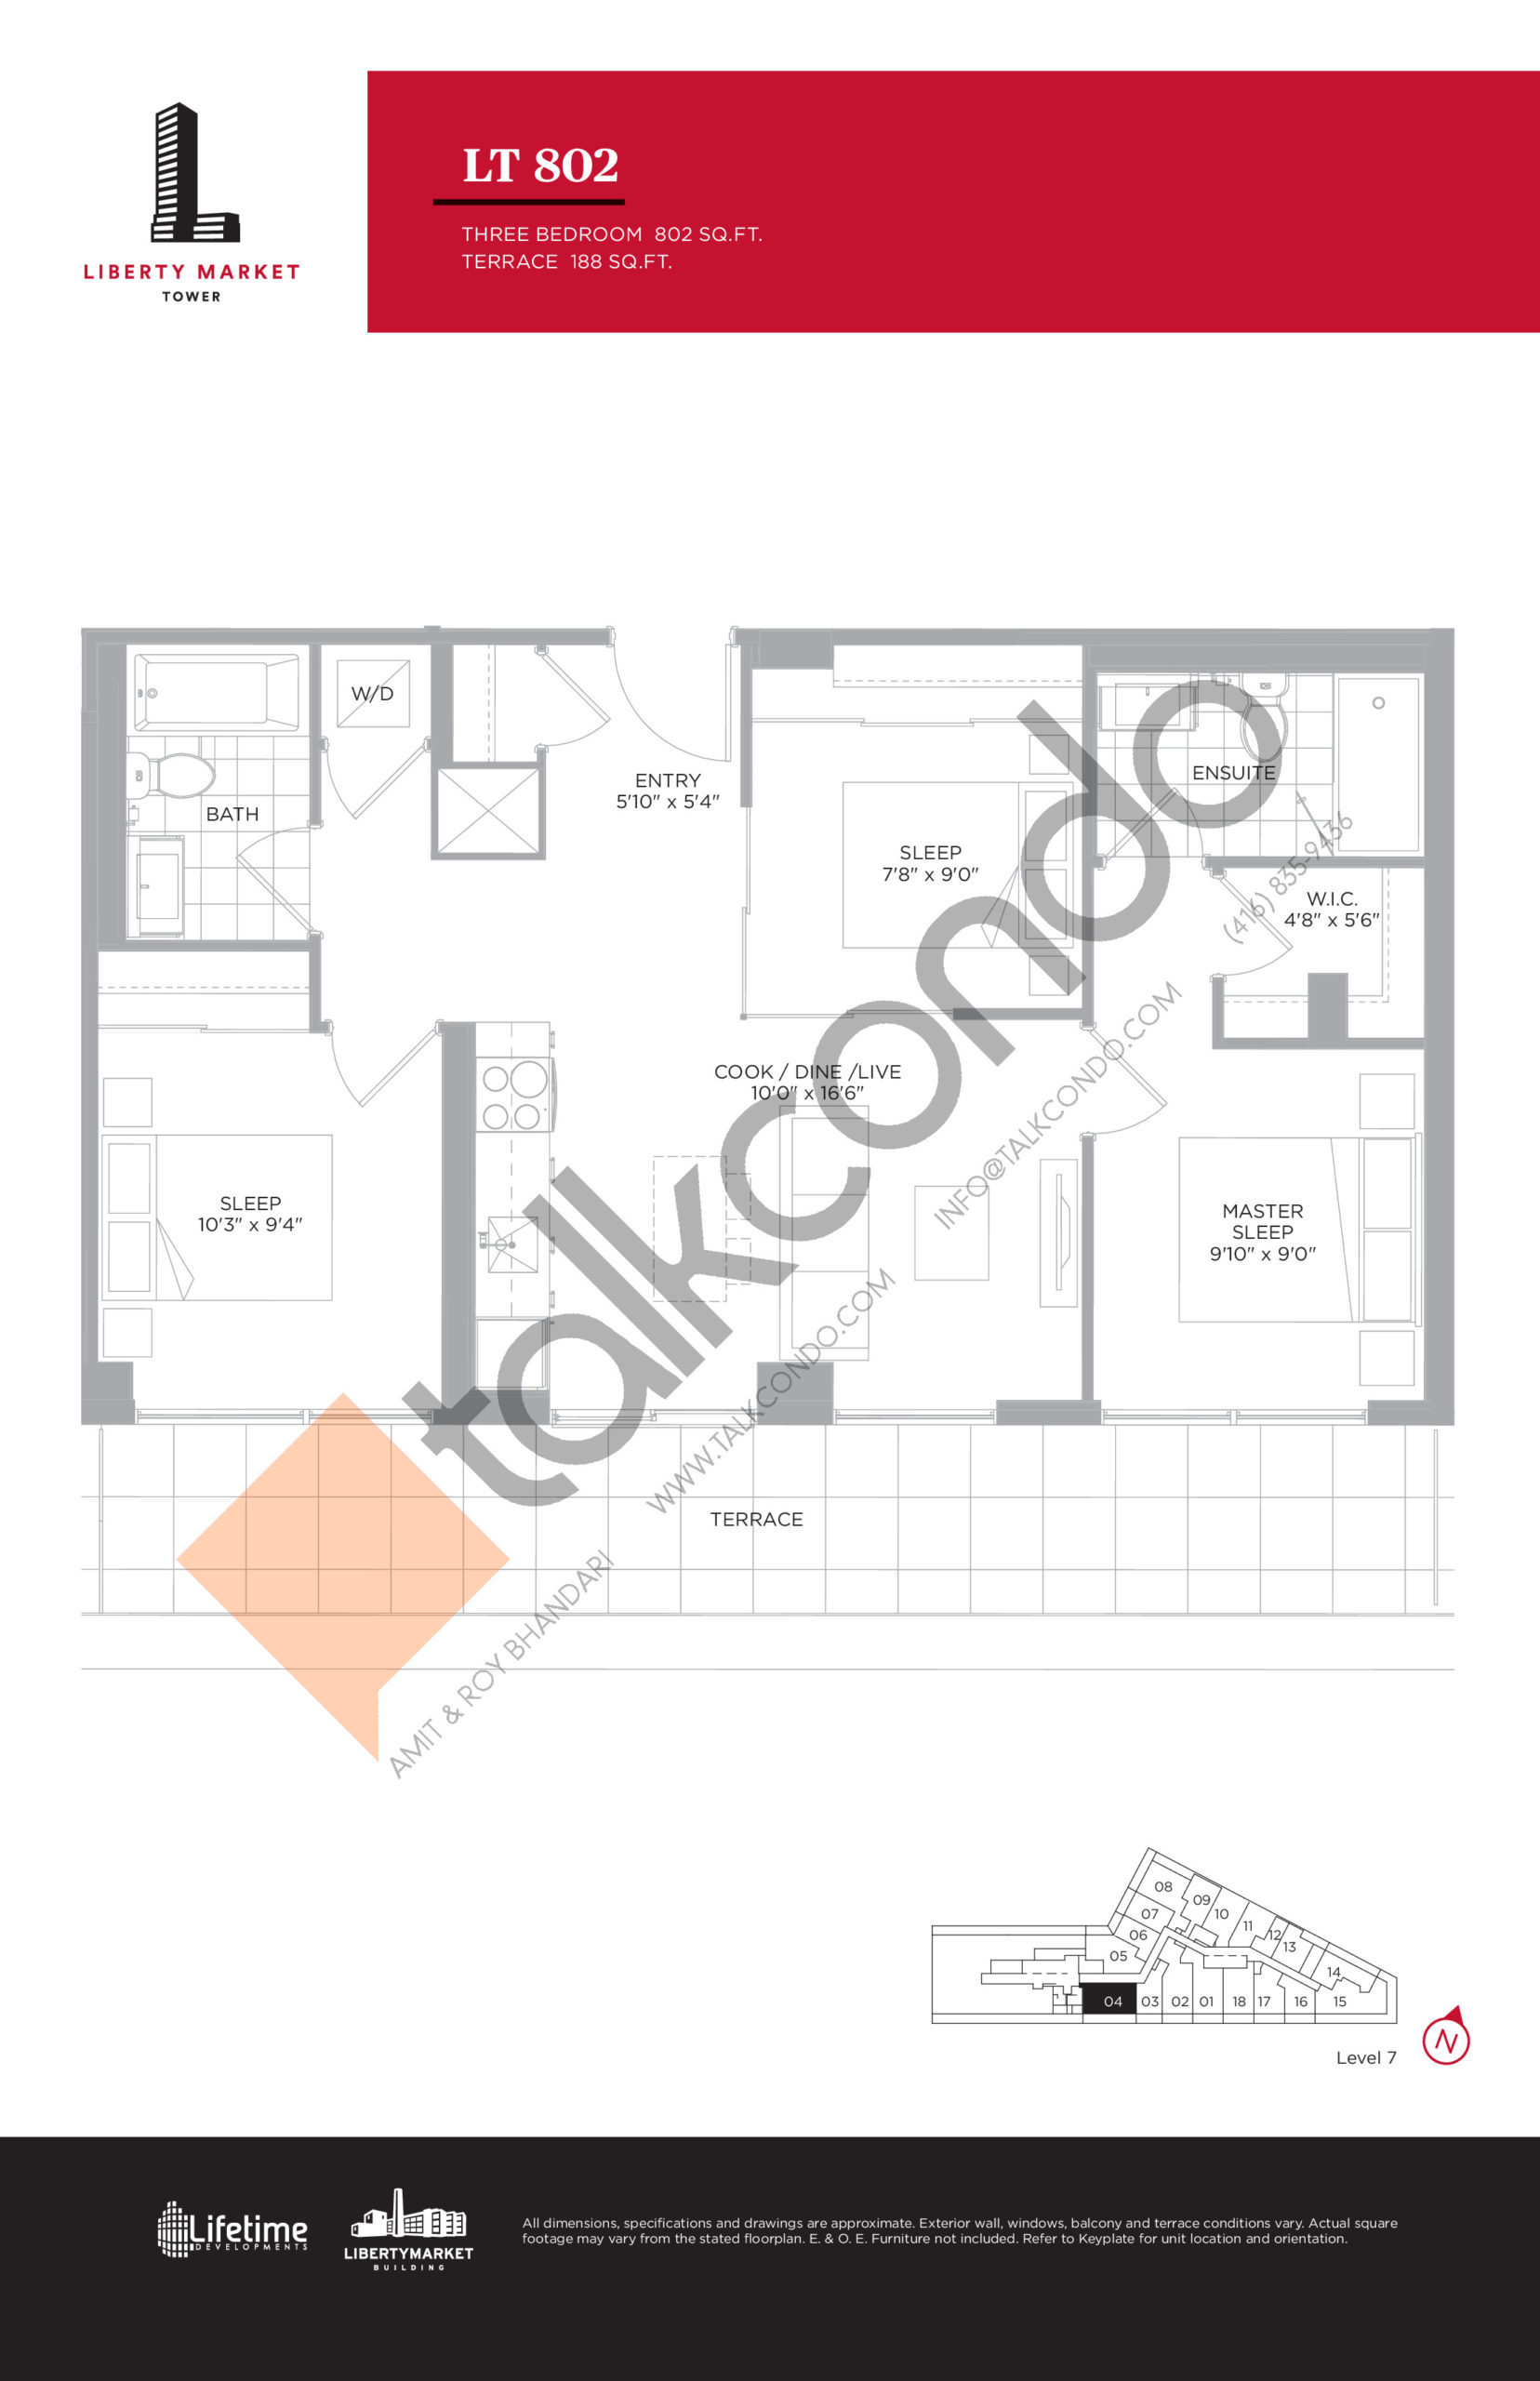 LT 802 - Terrace Collection Floor Plan at Liberty Market Tower Condos - 802 sq.ft